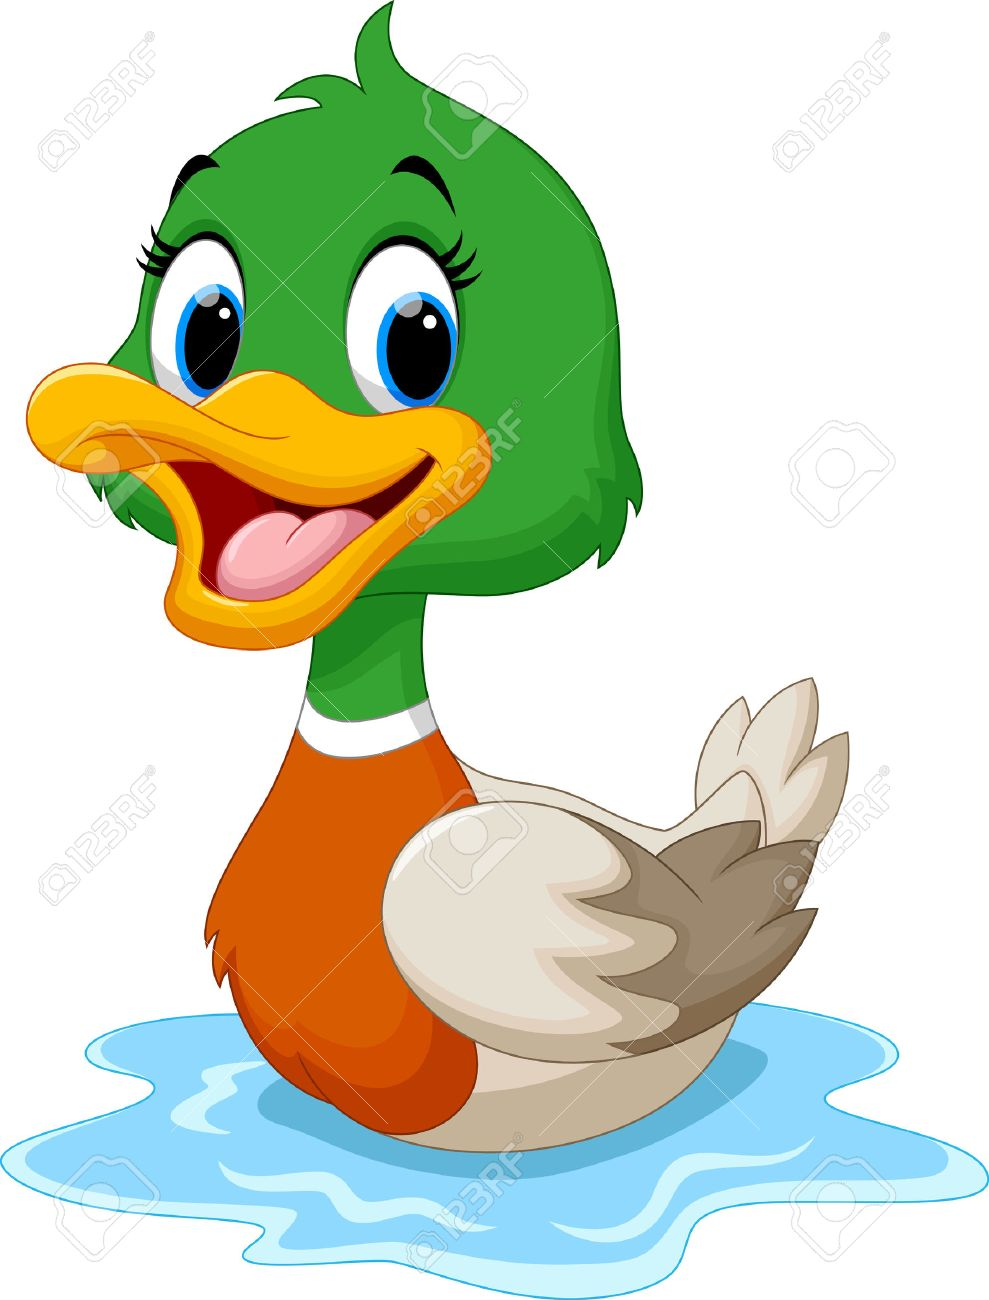 989x1300 Cartoon Duck Swimming Royalty Free Cliparts, Vectors, And Stock